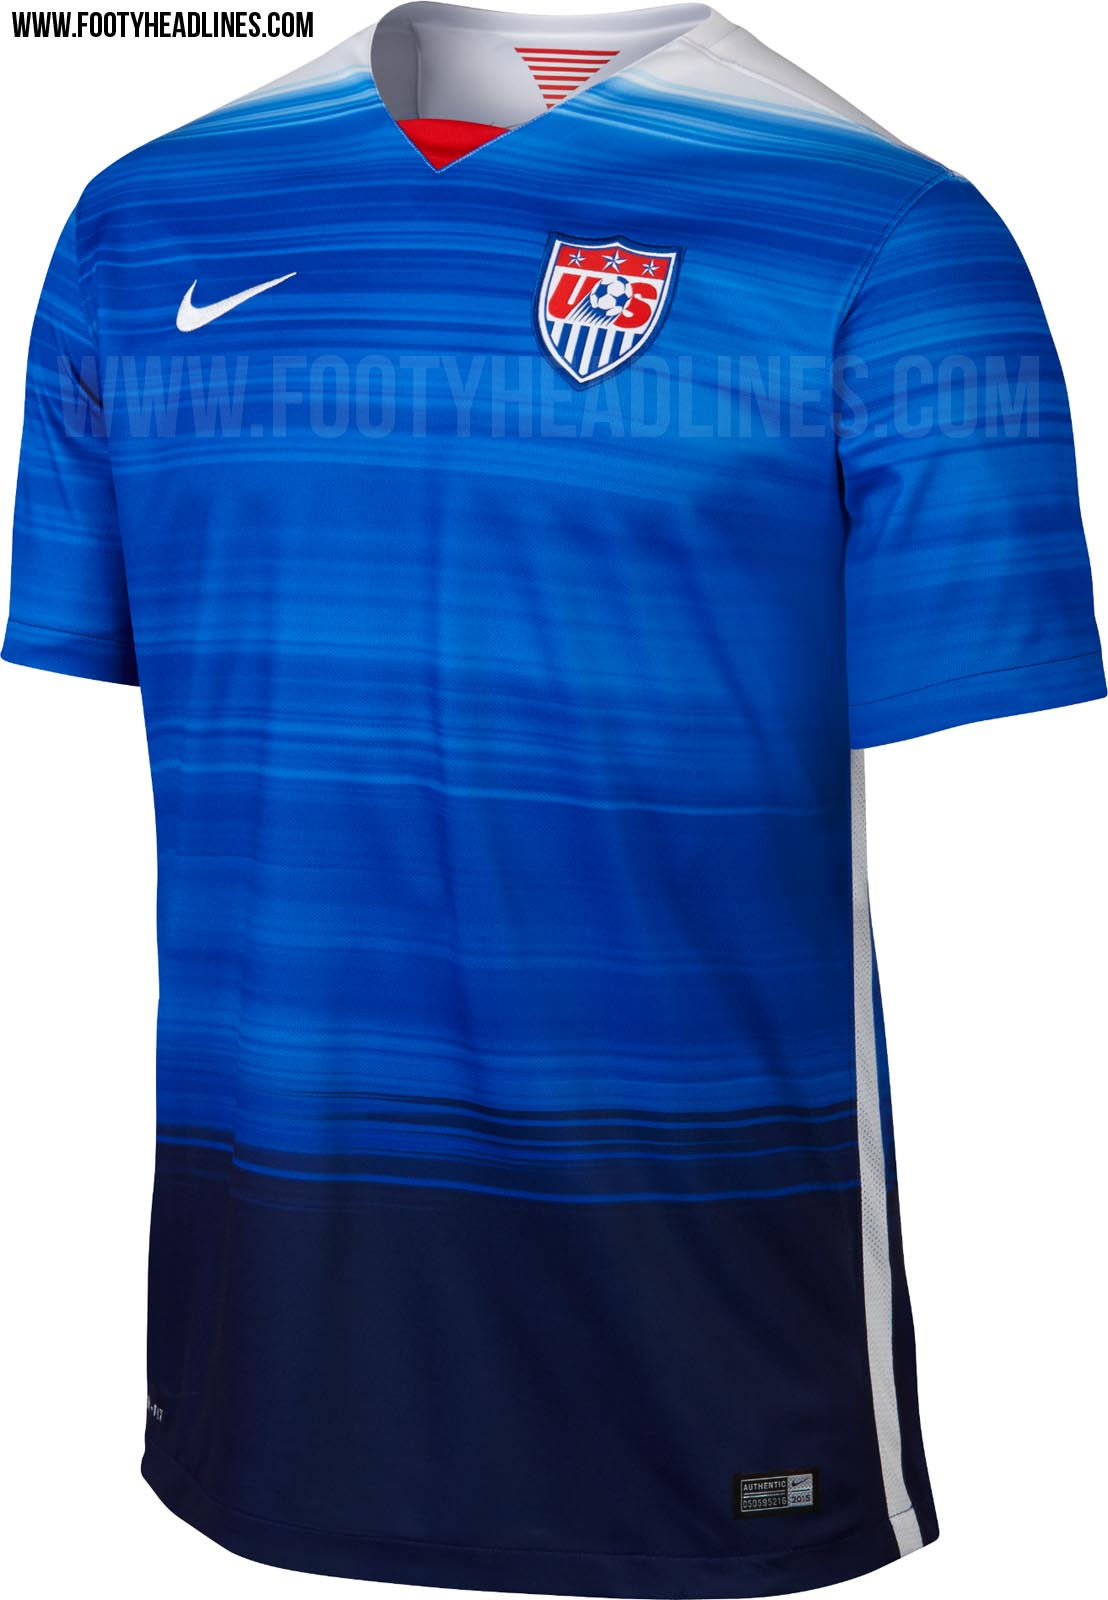 The 2015 Away Kit For US Soccer Gets A High-Profile Leak | Chris ...